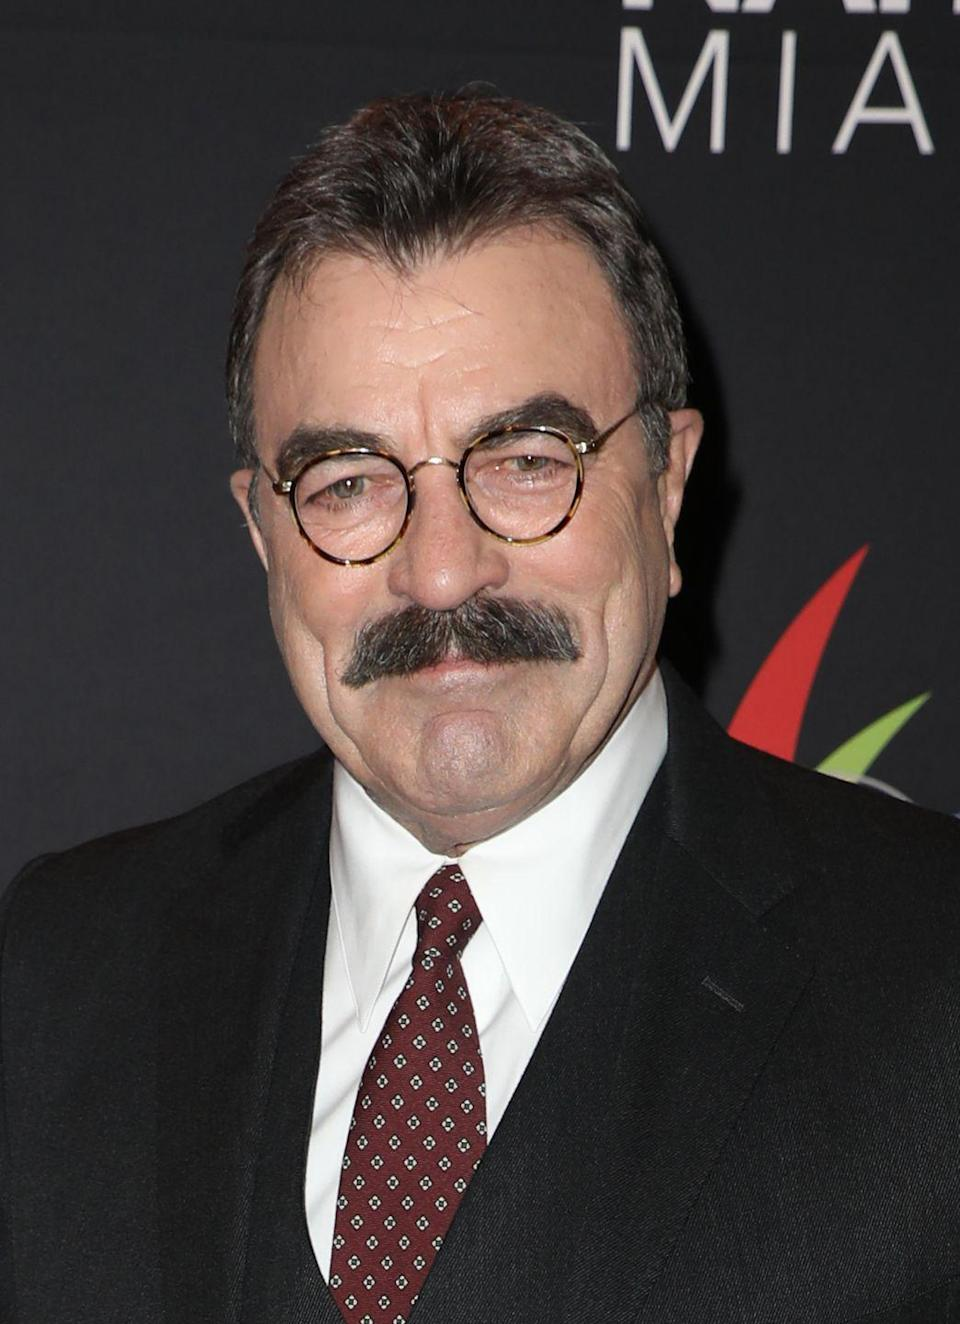 <p>After all this time, we can all rest assured that Tom's mustache remains intact. Recently, the actor has starred in several murder mystery TV movies, and has appeared on the hit television show <em>Blue Bloods </em>as Police Chief and patriarch Frank Reagan. </p>